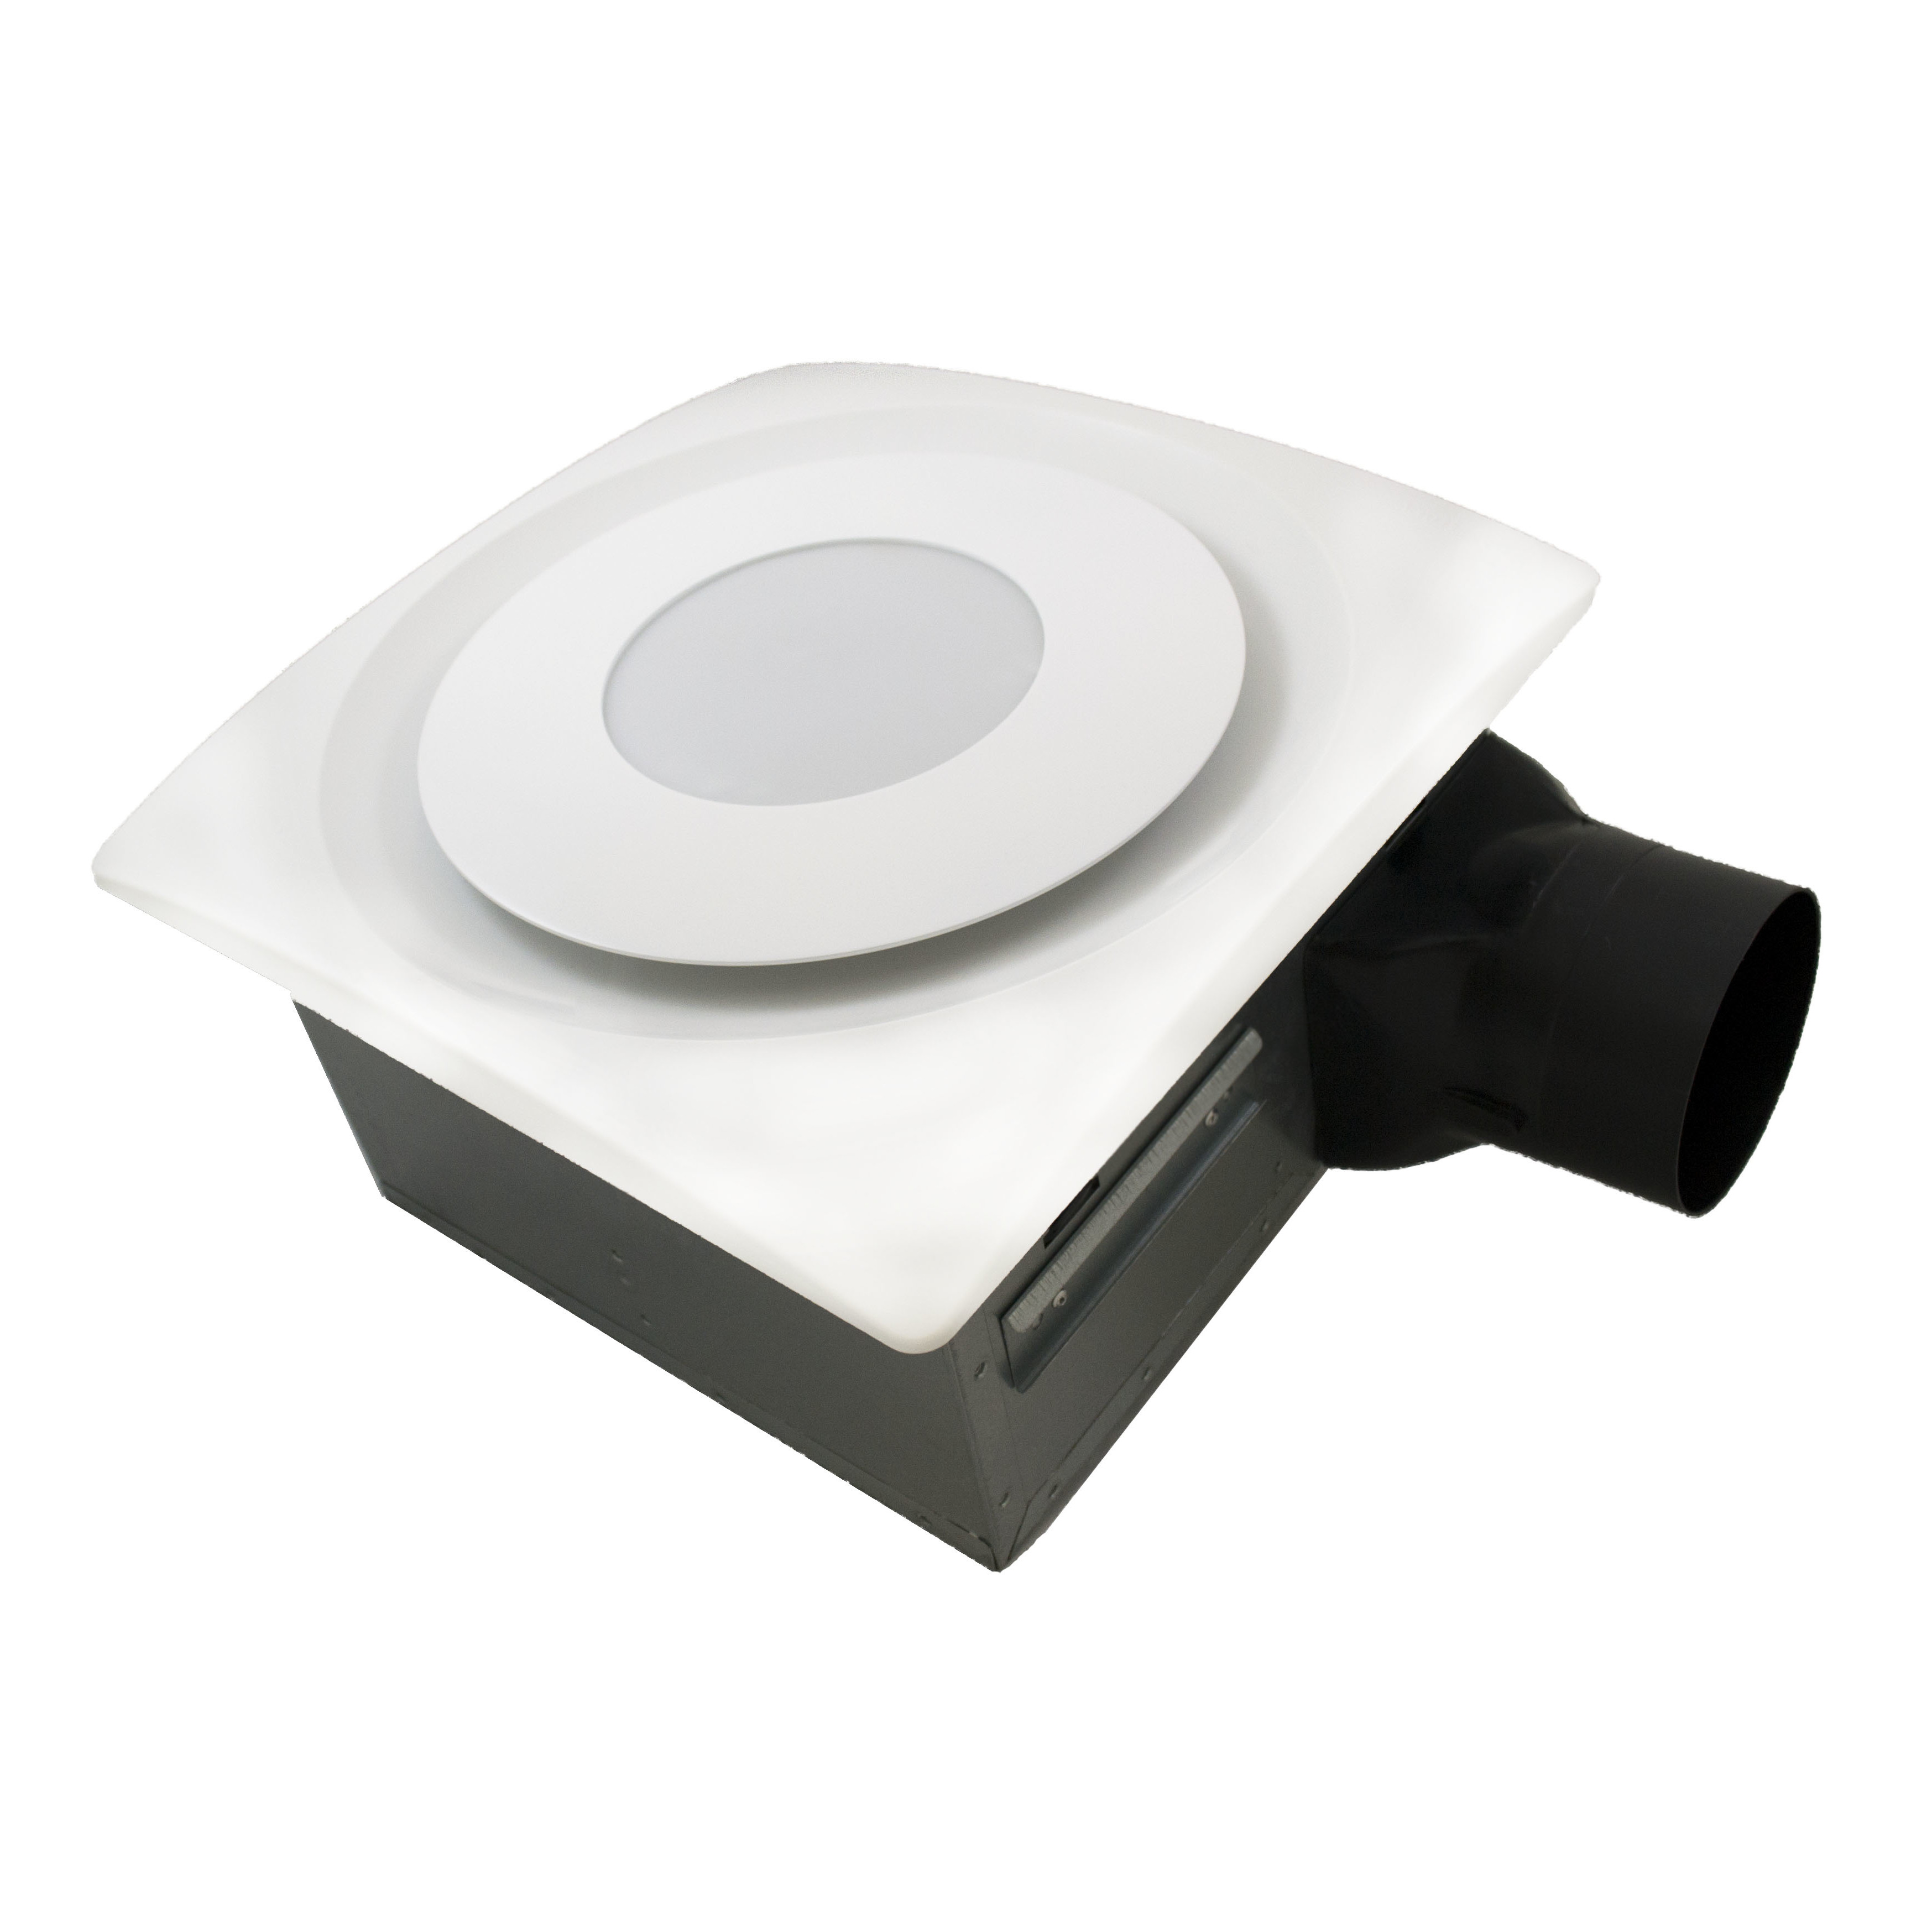 Broan Bathroom Fan Installation | Bathroom Ventilation Fan | Broan Bathroom Fan